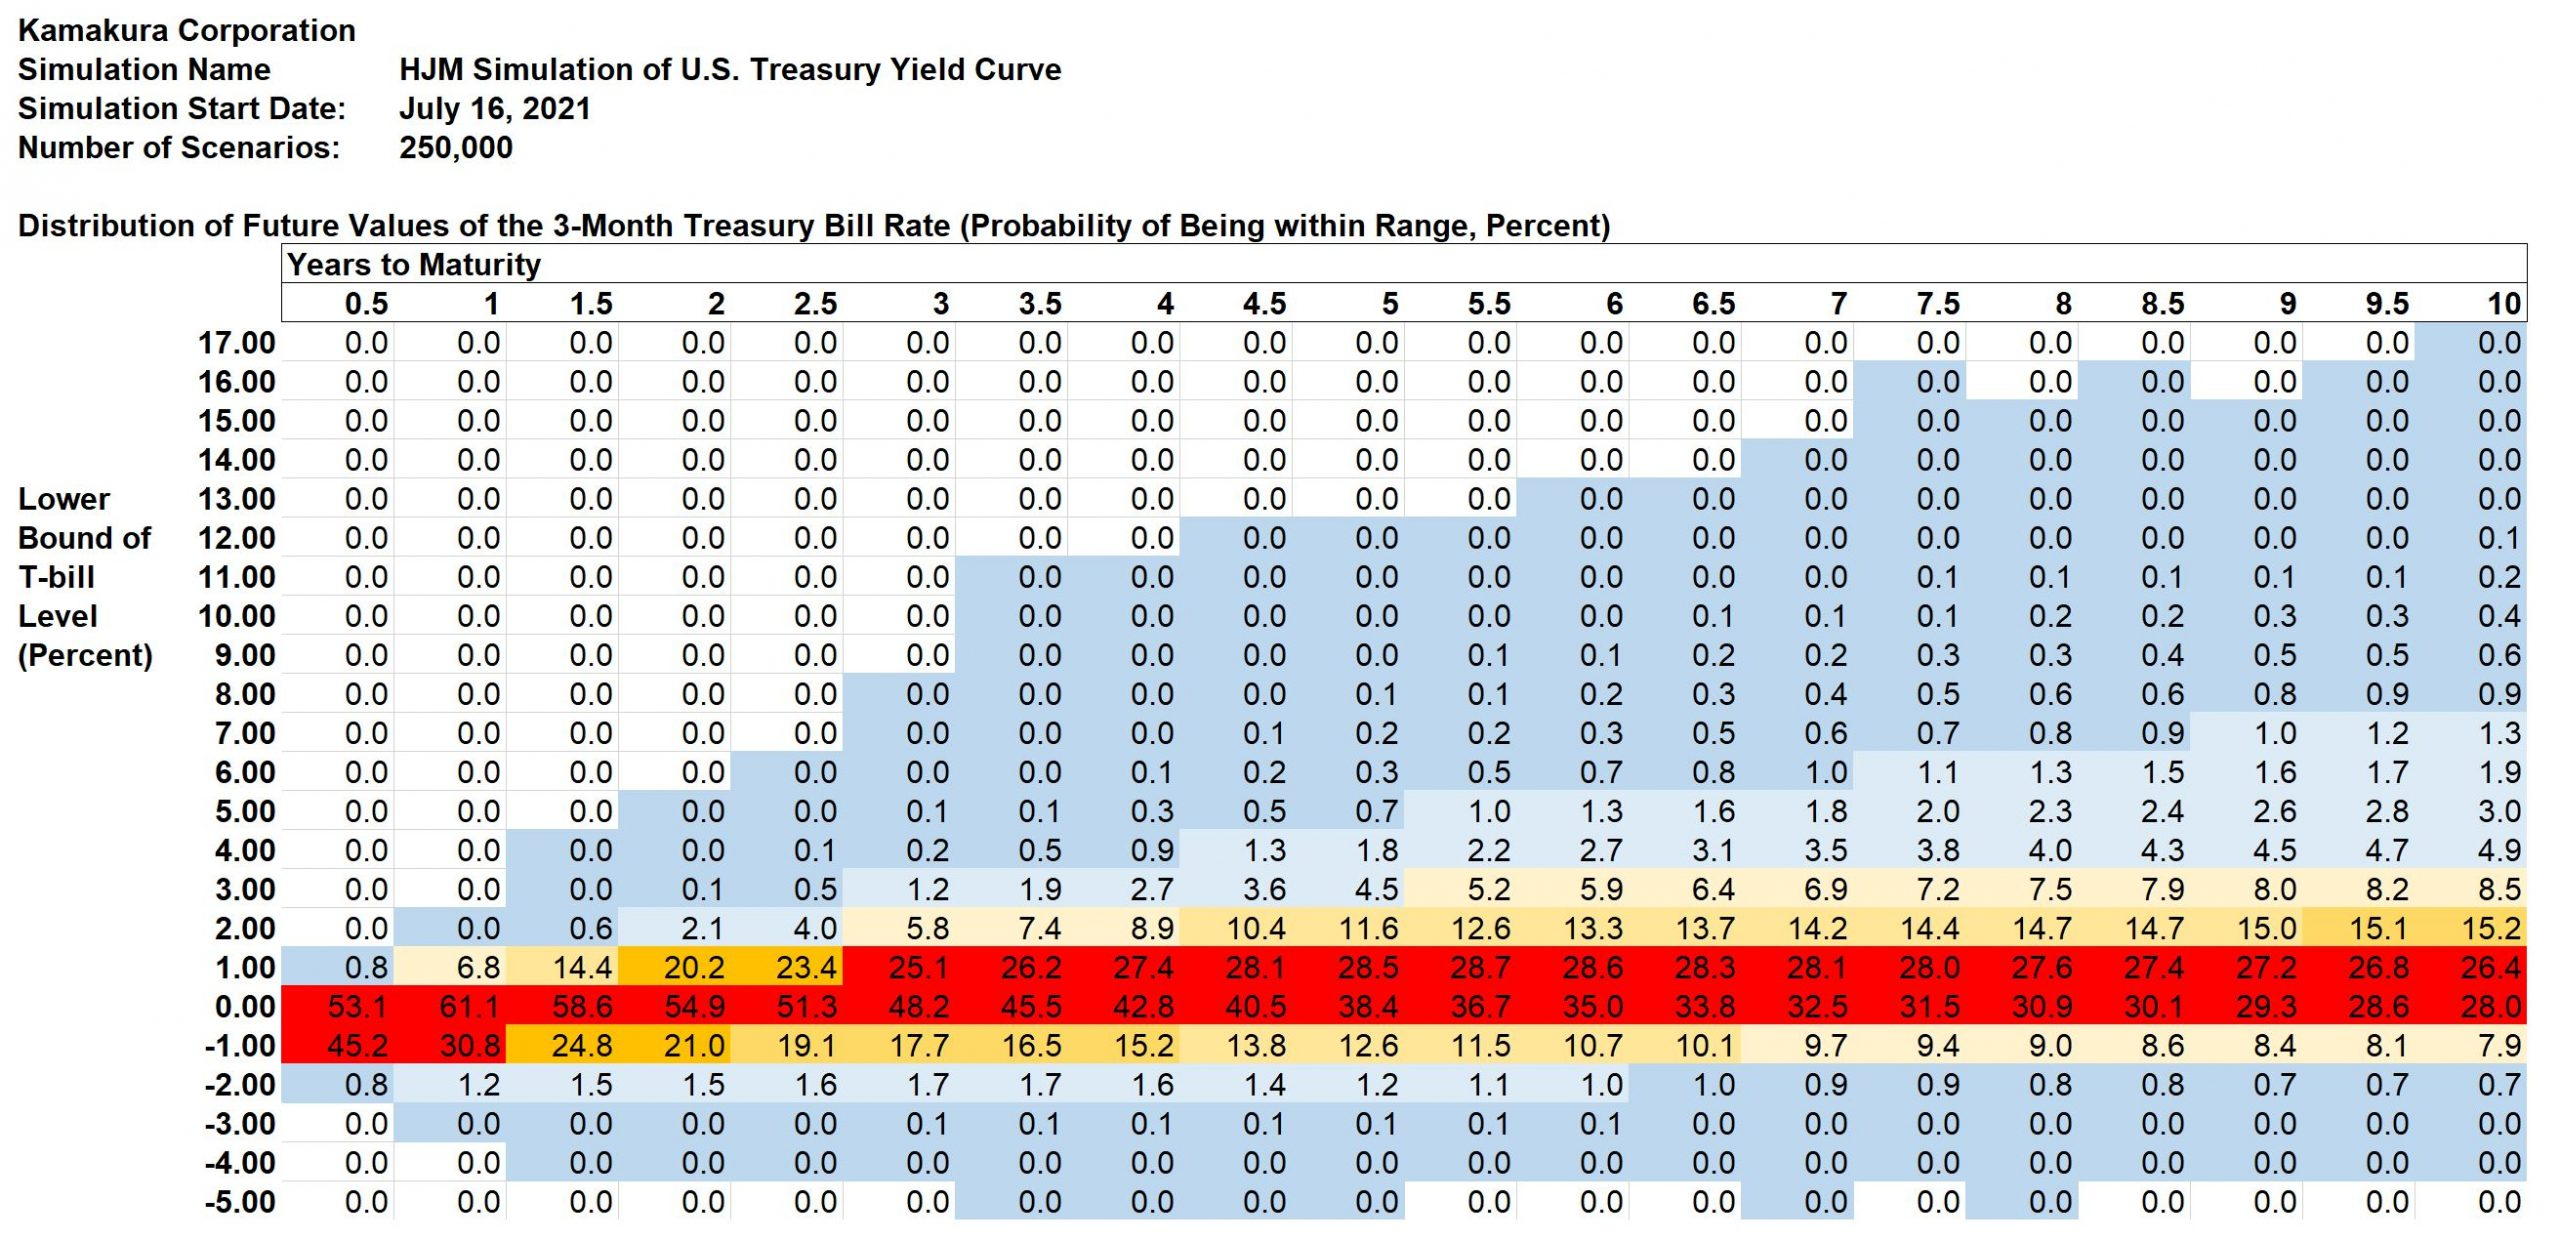 Outlook for 3-Month Treasury Bill yields